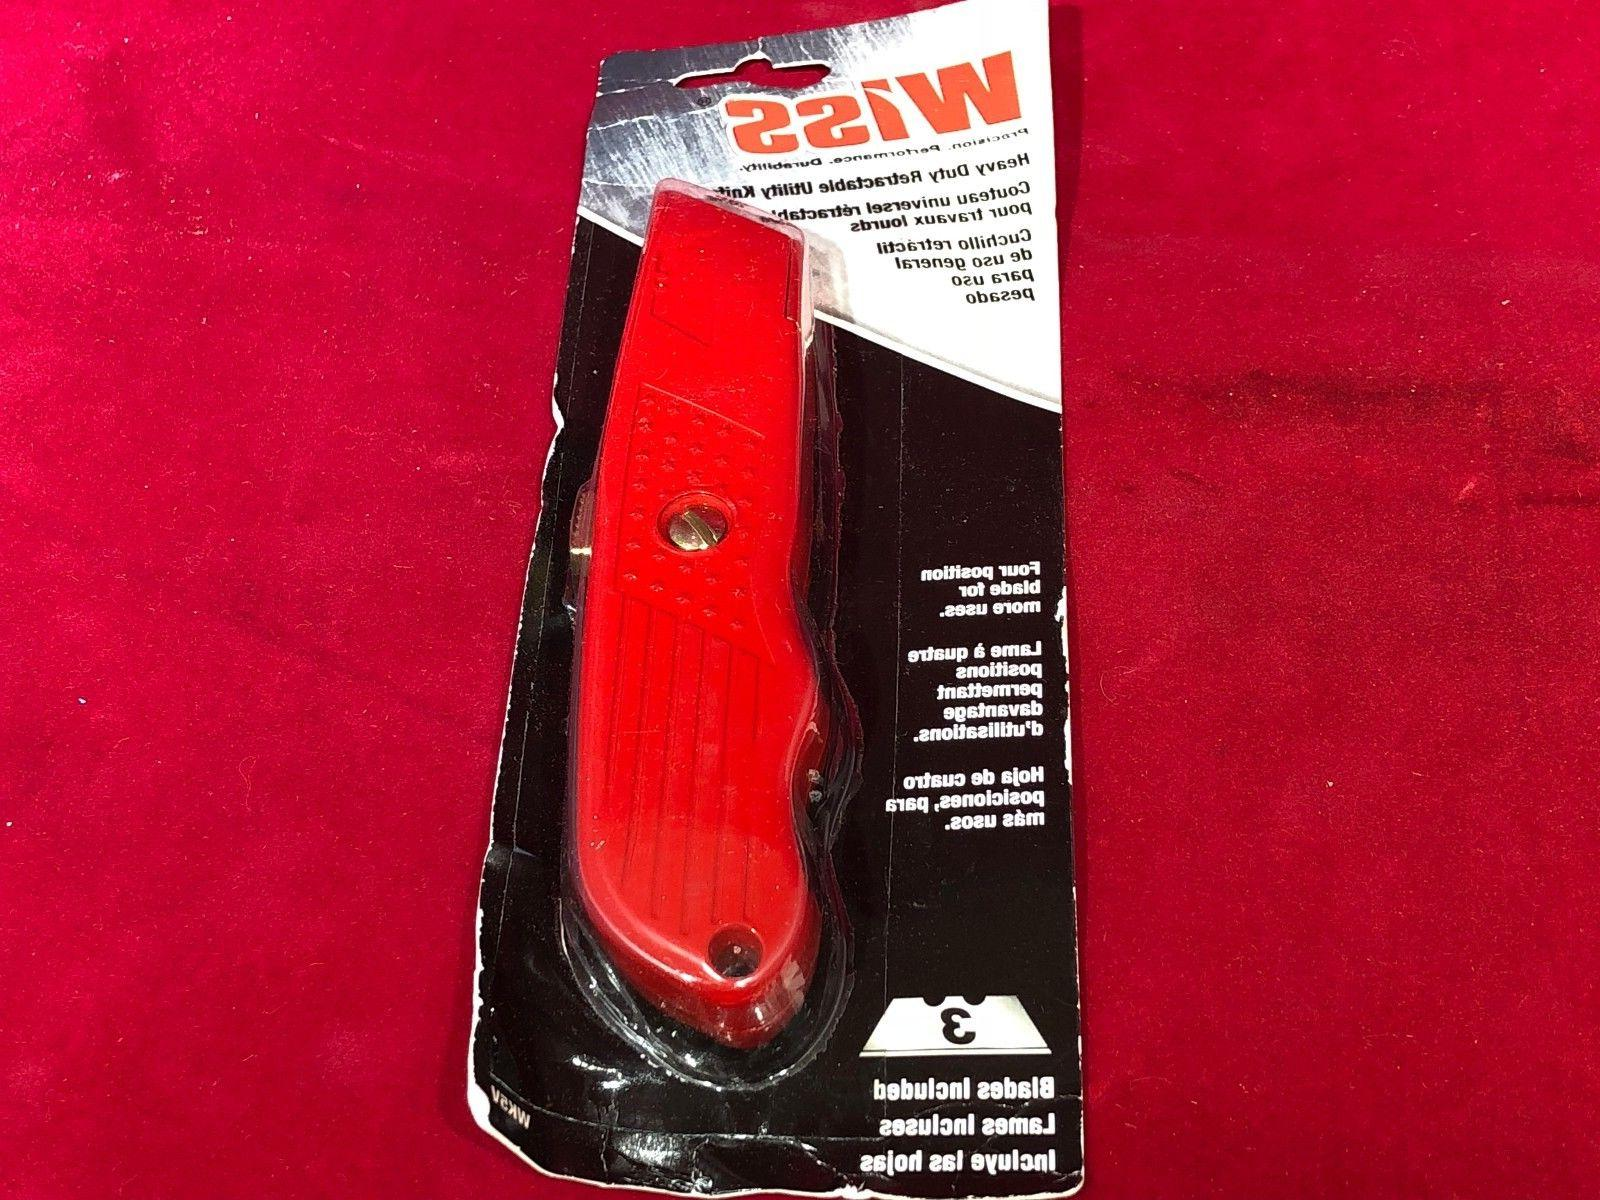 new wk5v heavy duty retractable utility knife